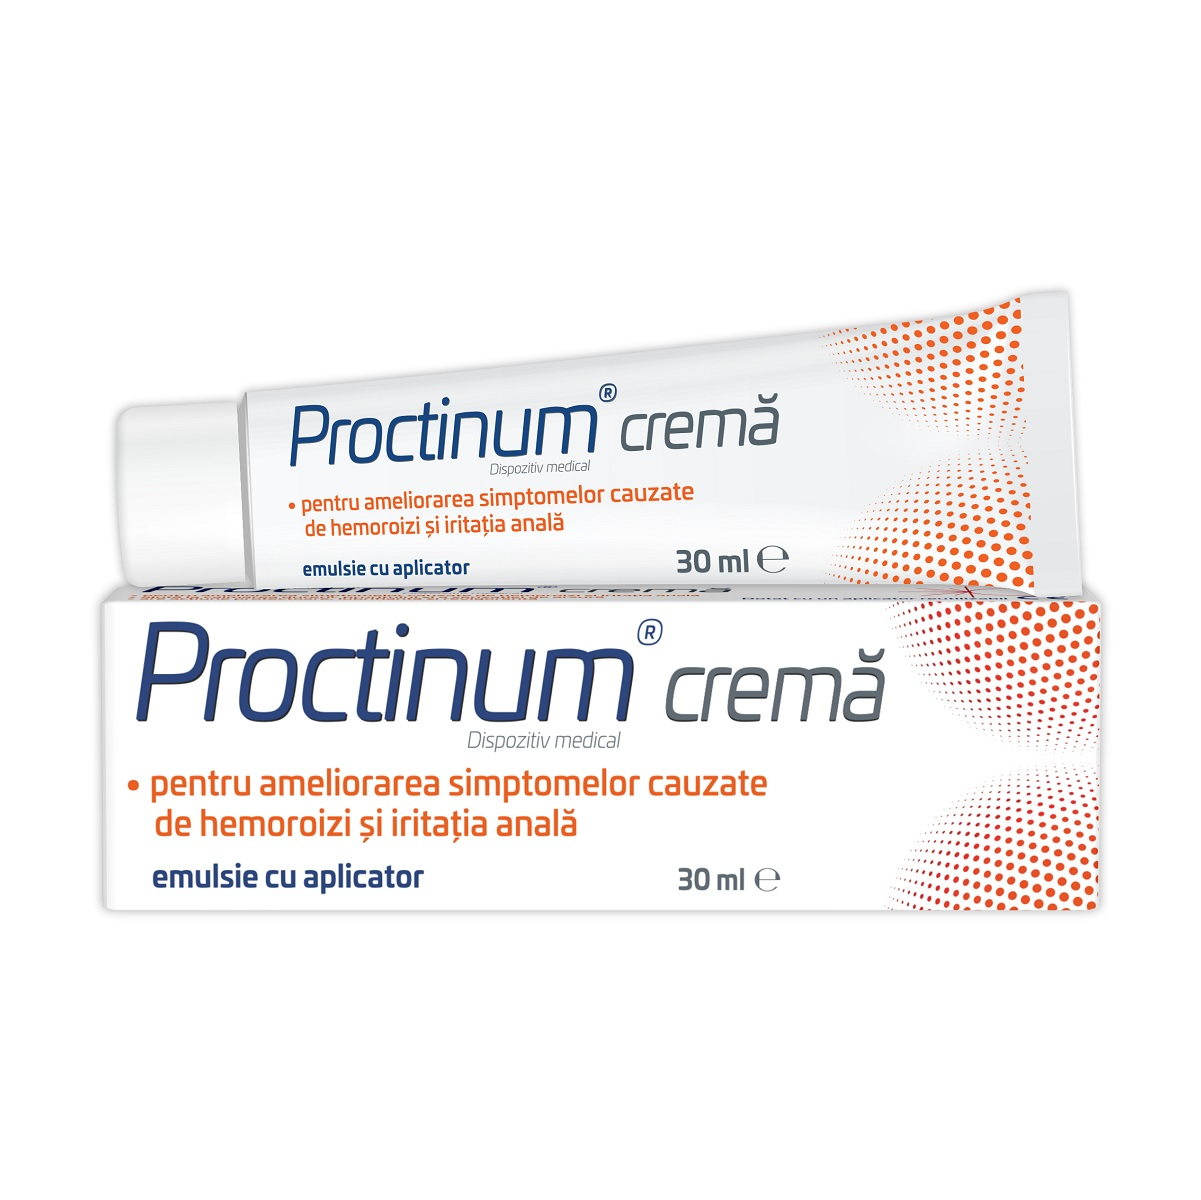 Proctinum crema, 30 ml, Zdrovit imagine produs 2021